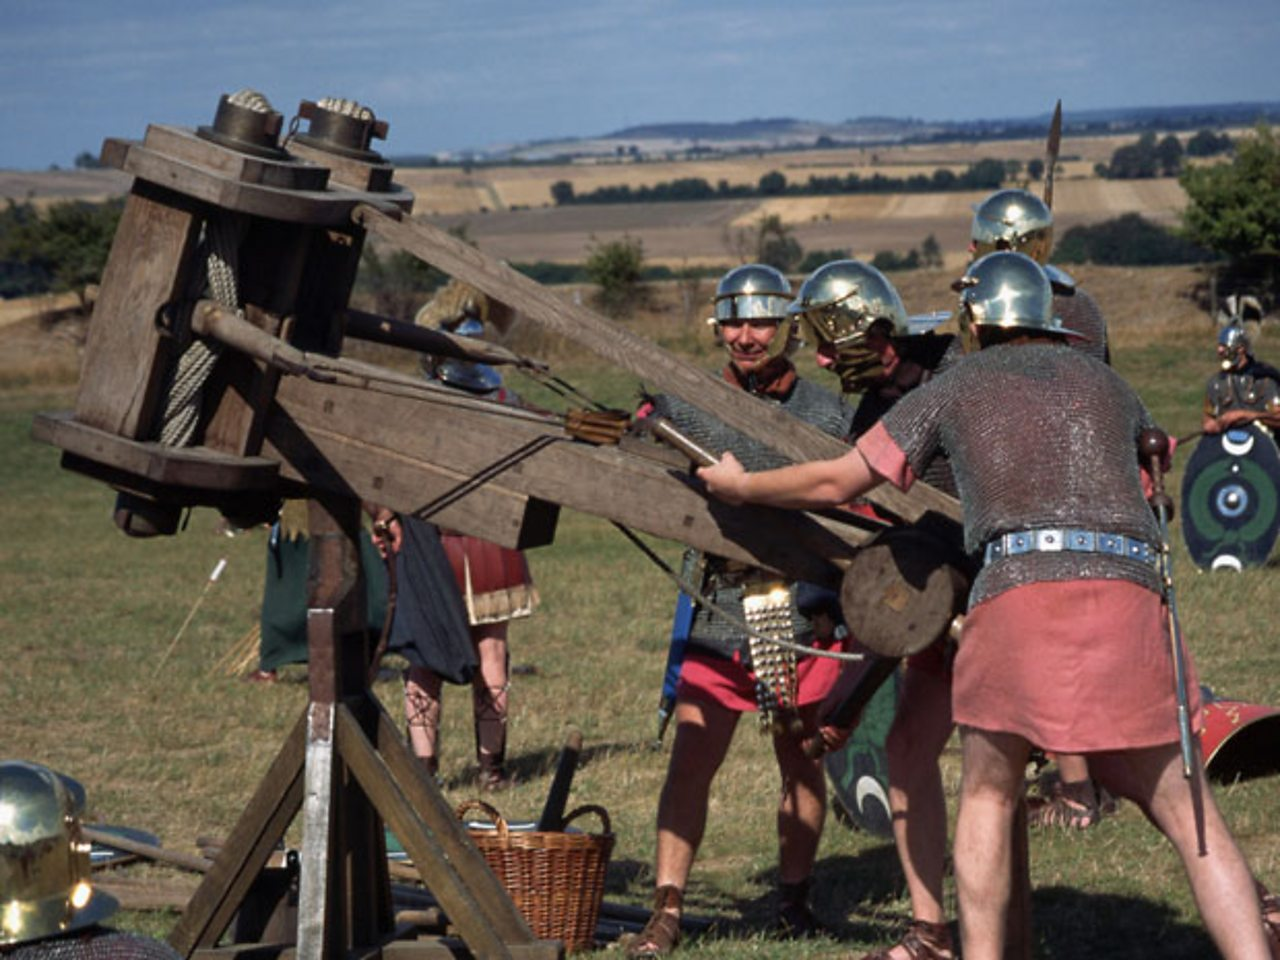 Roman soldiers firing a catapult.